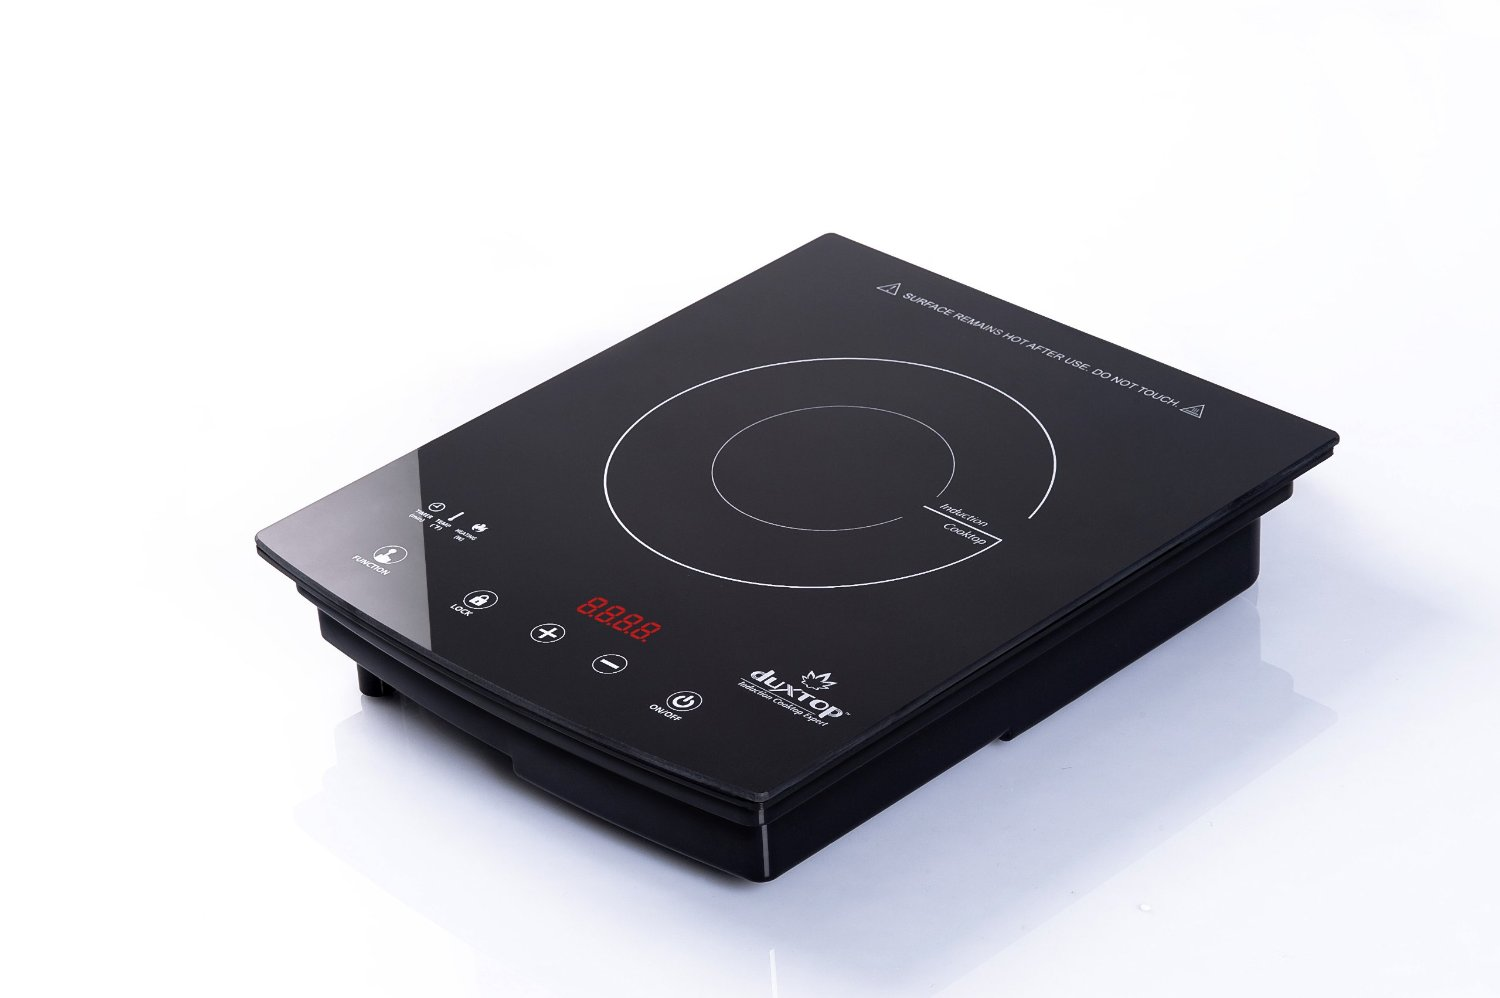 DUXTOP 1800-Watt Portable Sensor Touch Induction Cooktop